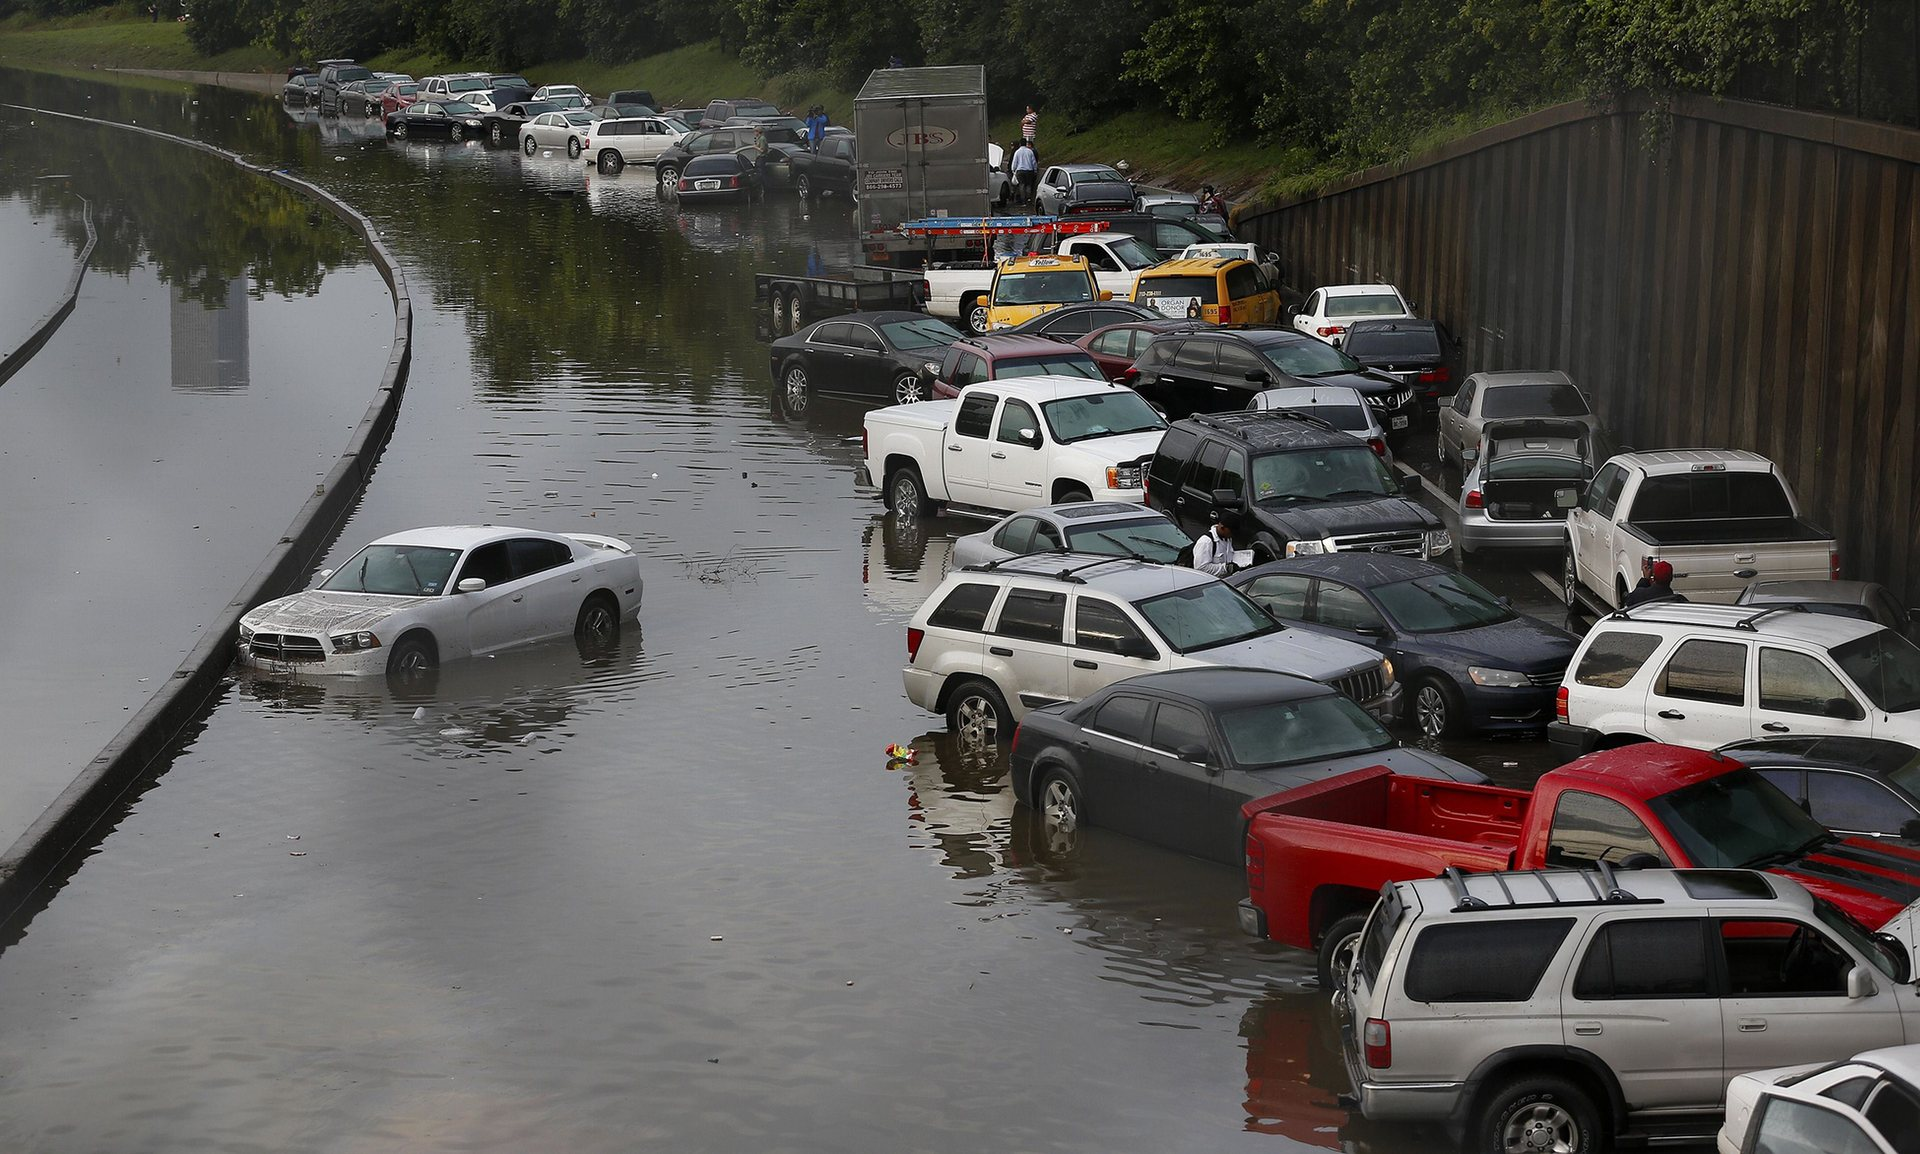 Vehicles left stranded on a flooded Interstate 45 in Houston, Texas. PHOTO: AFP